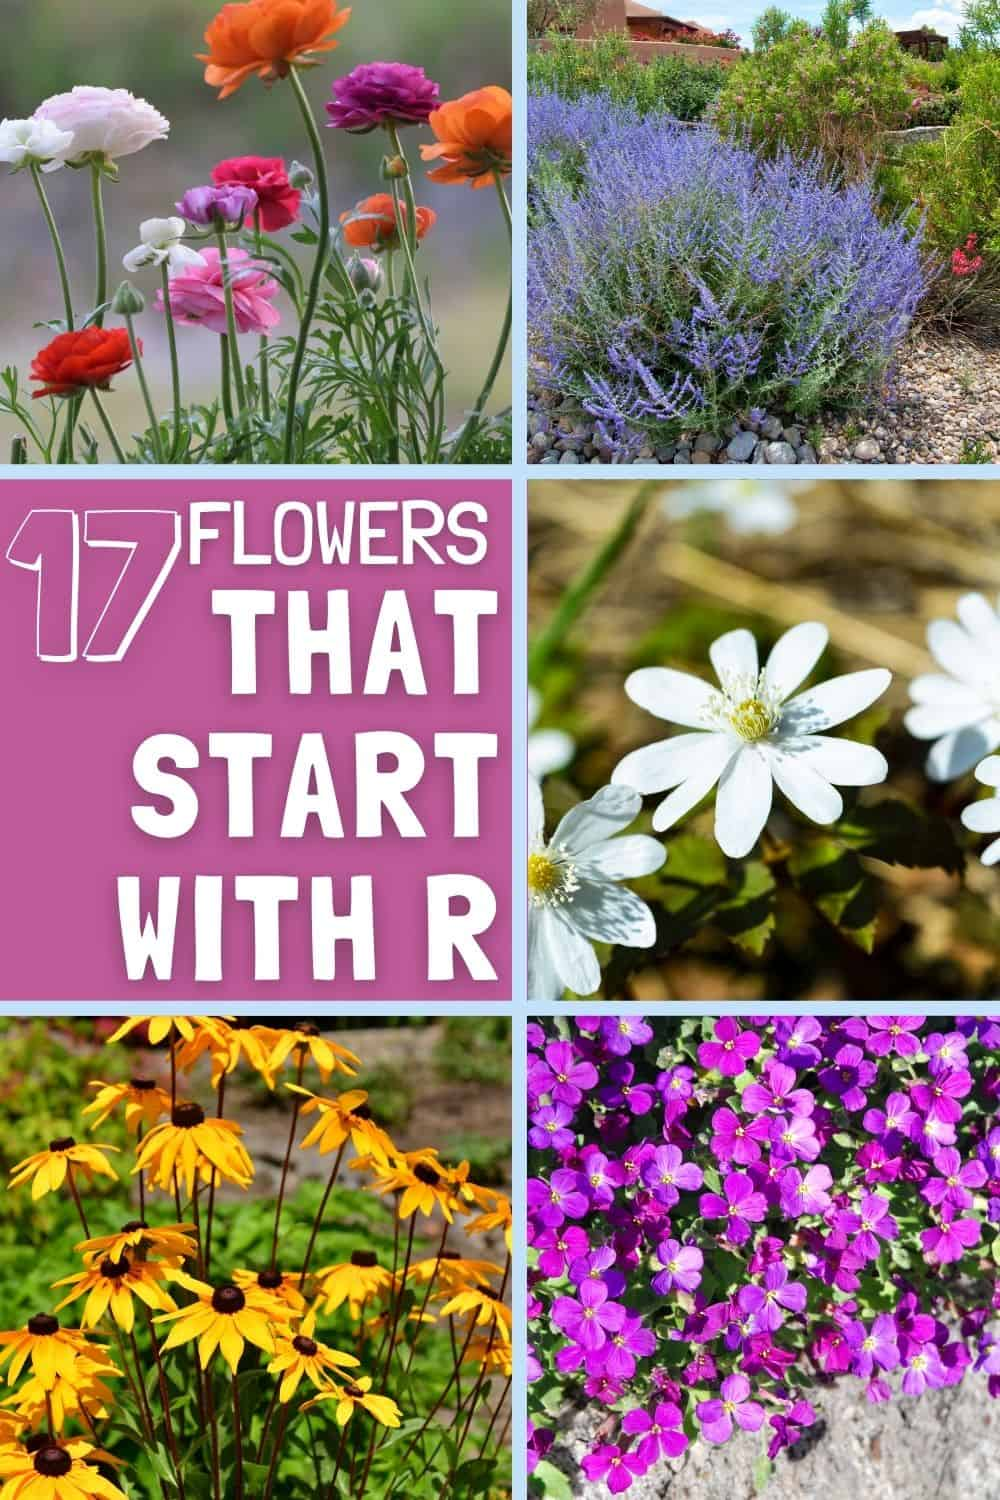 flowers that start with r